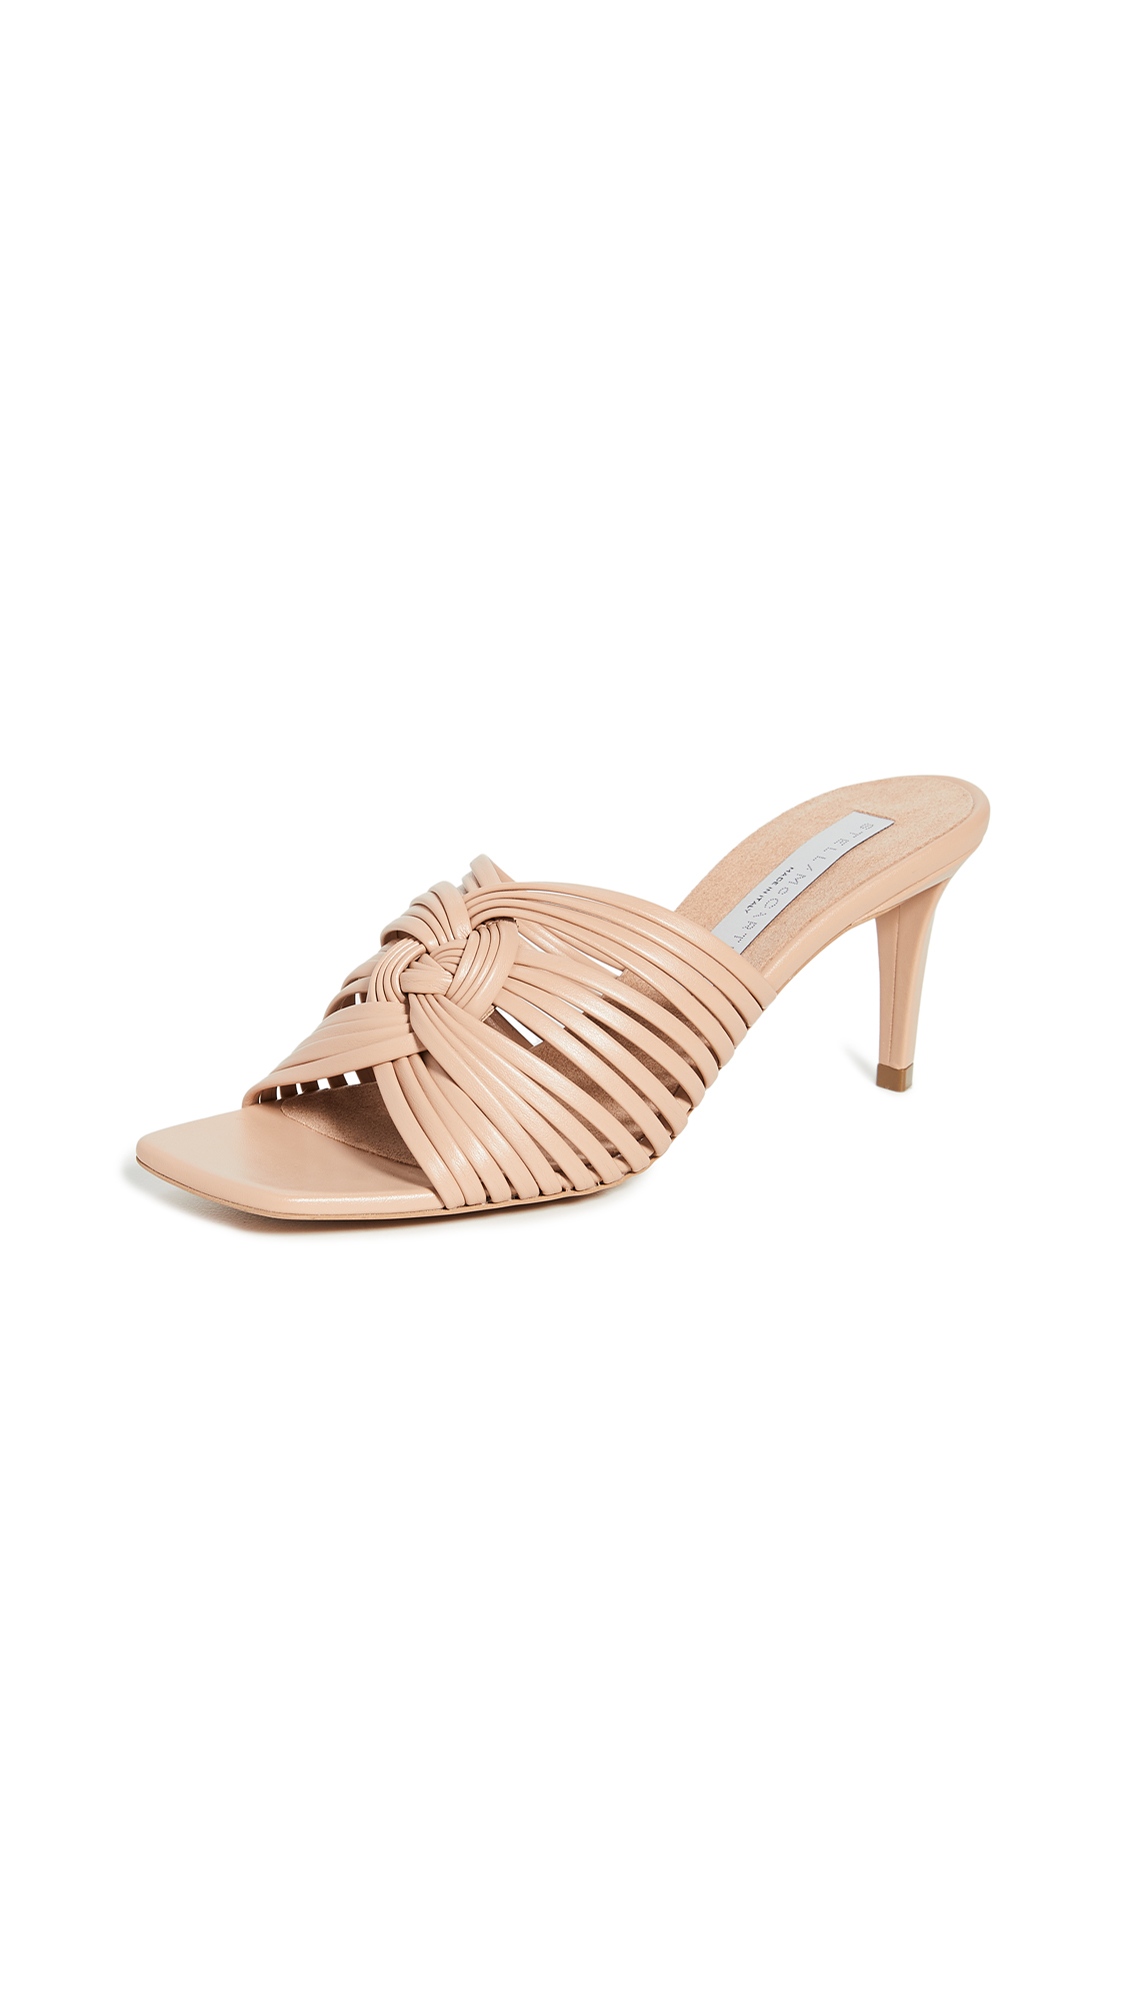 Buy Stella McCartney Strappy Mules online, shop Stella McCartney